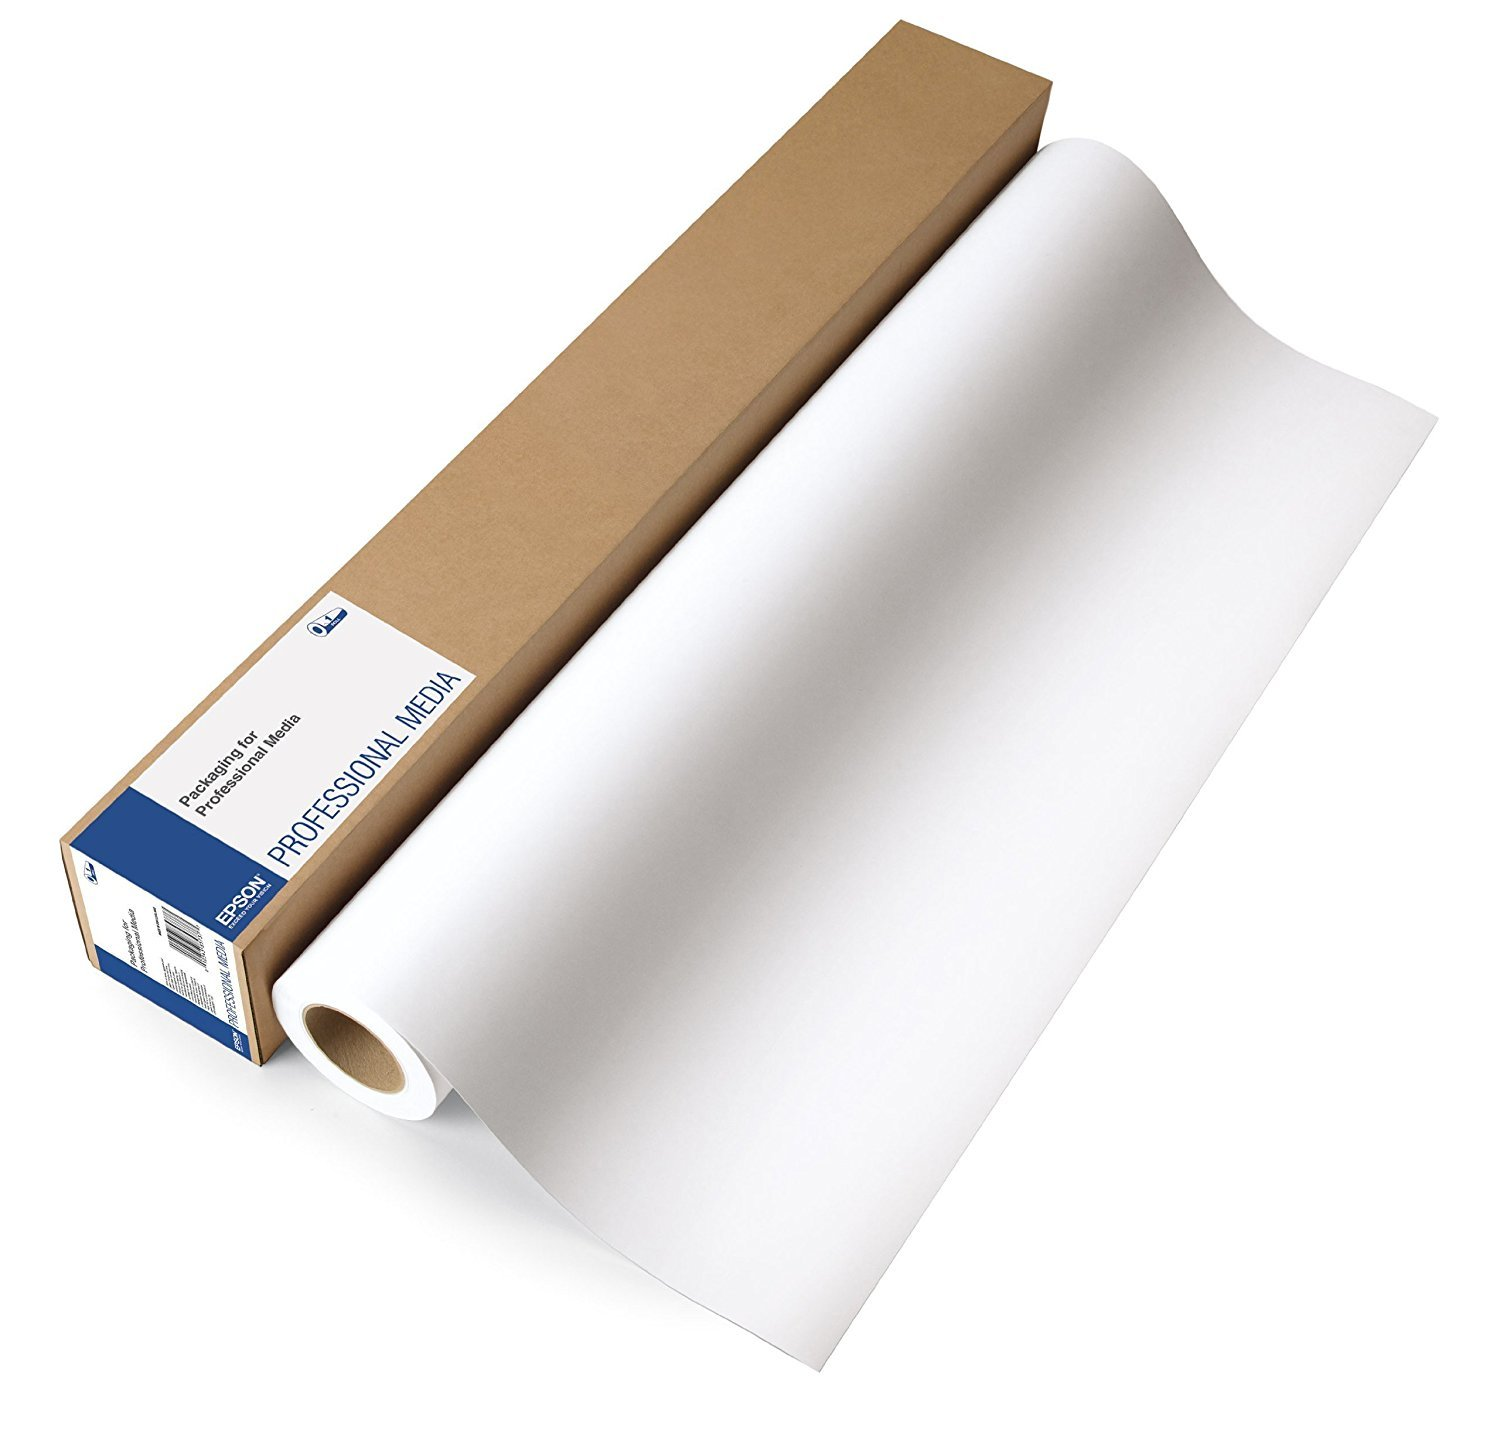 Epson : Enhanced Matte Paper, 24''w, 100`l, White, Roll -:- Sold as 2 Packs of - 1 - / - Total of 2 Each